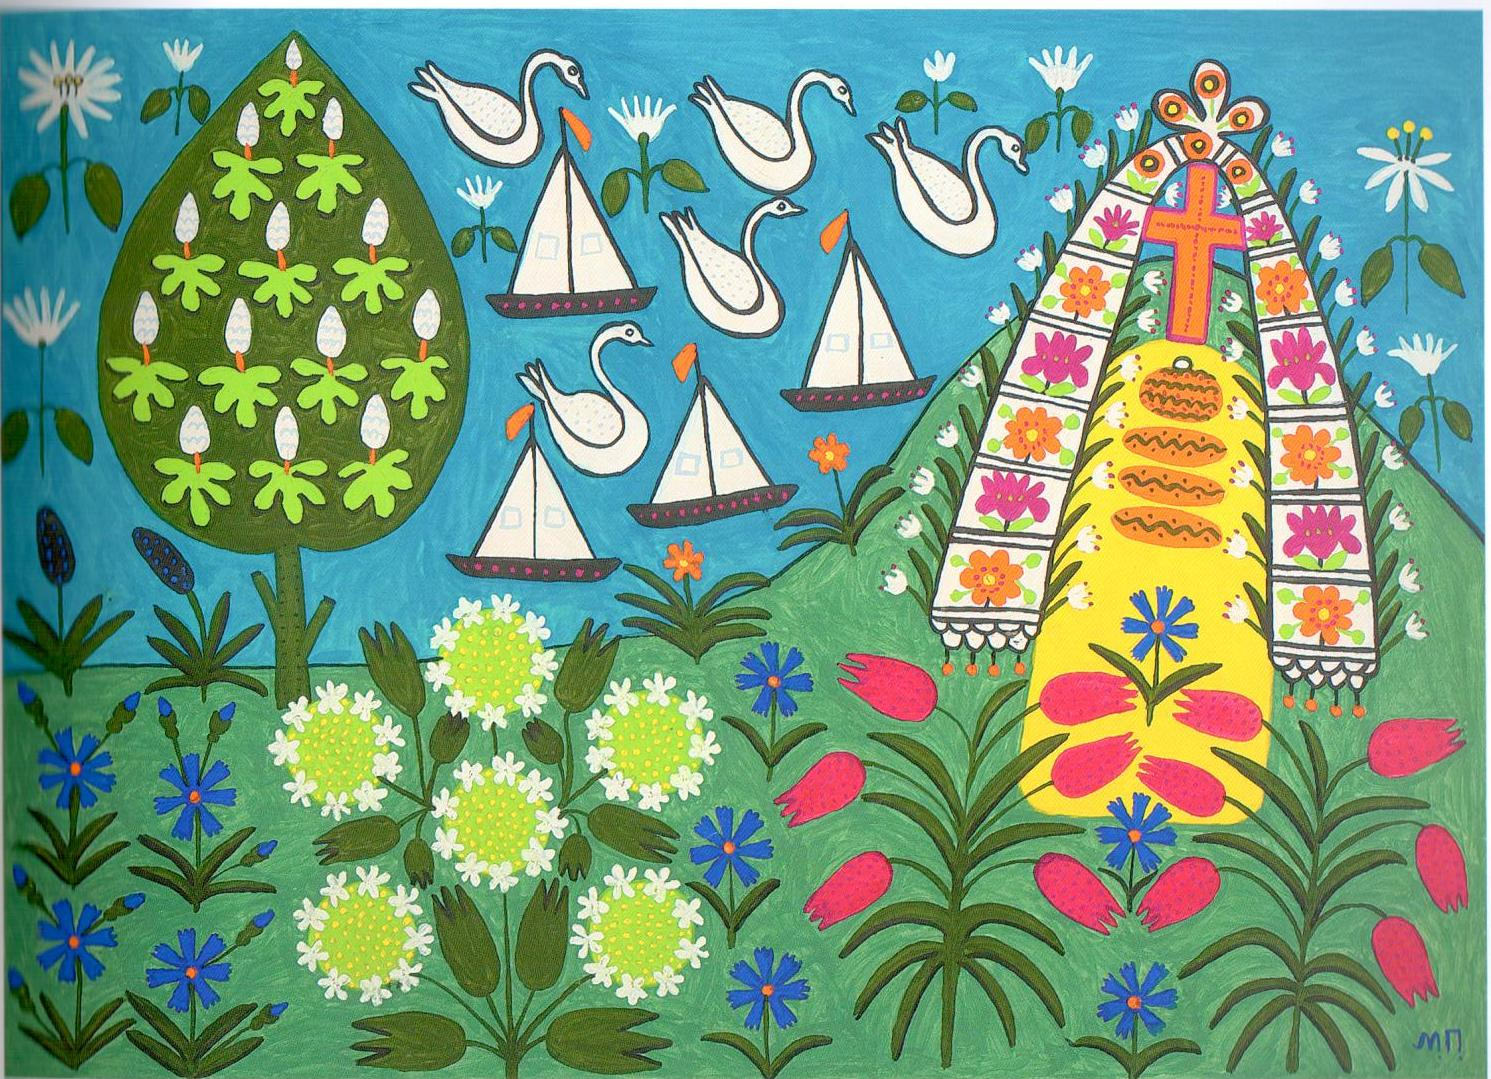 dear-taras-hryhorovych-whatever-you-see-here-is-yours, Maria Prymachenko, ideas for Marimekko, folk art, naive